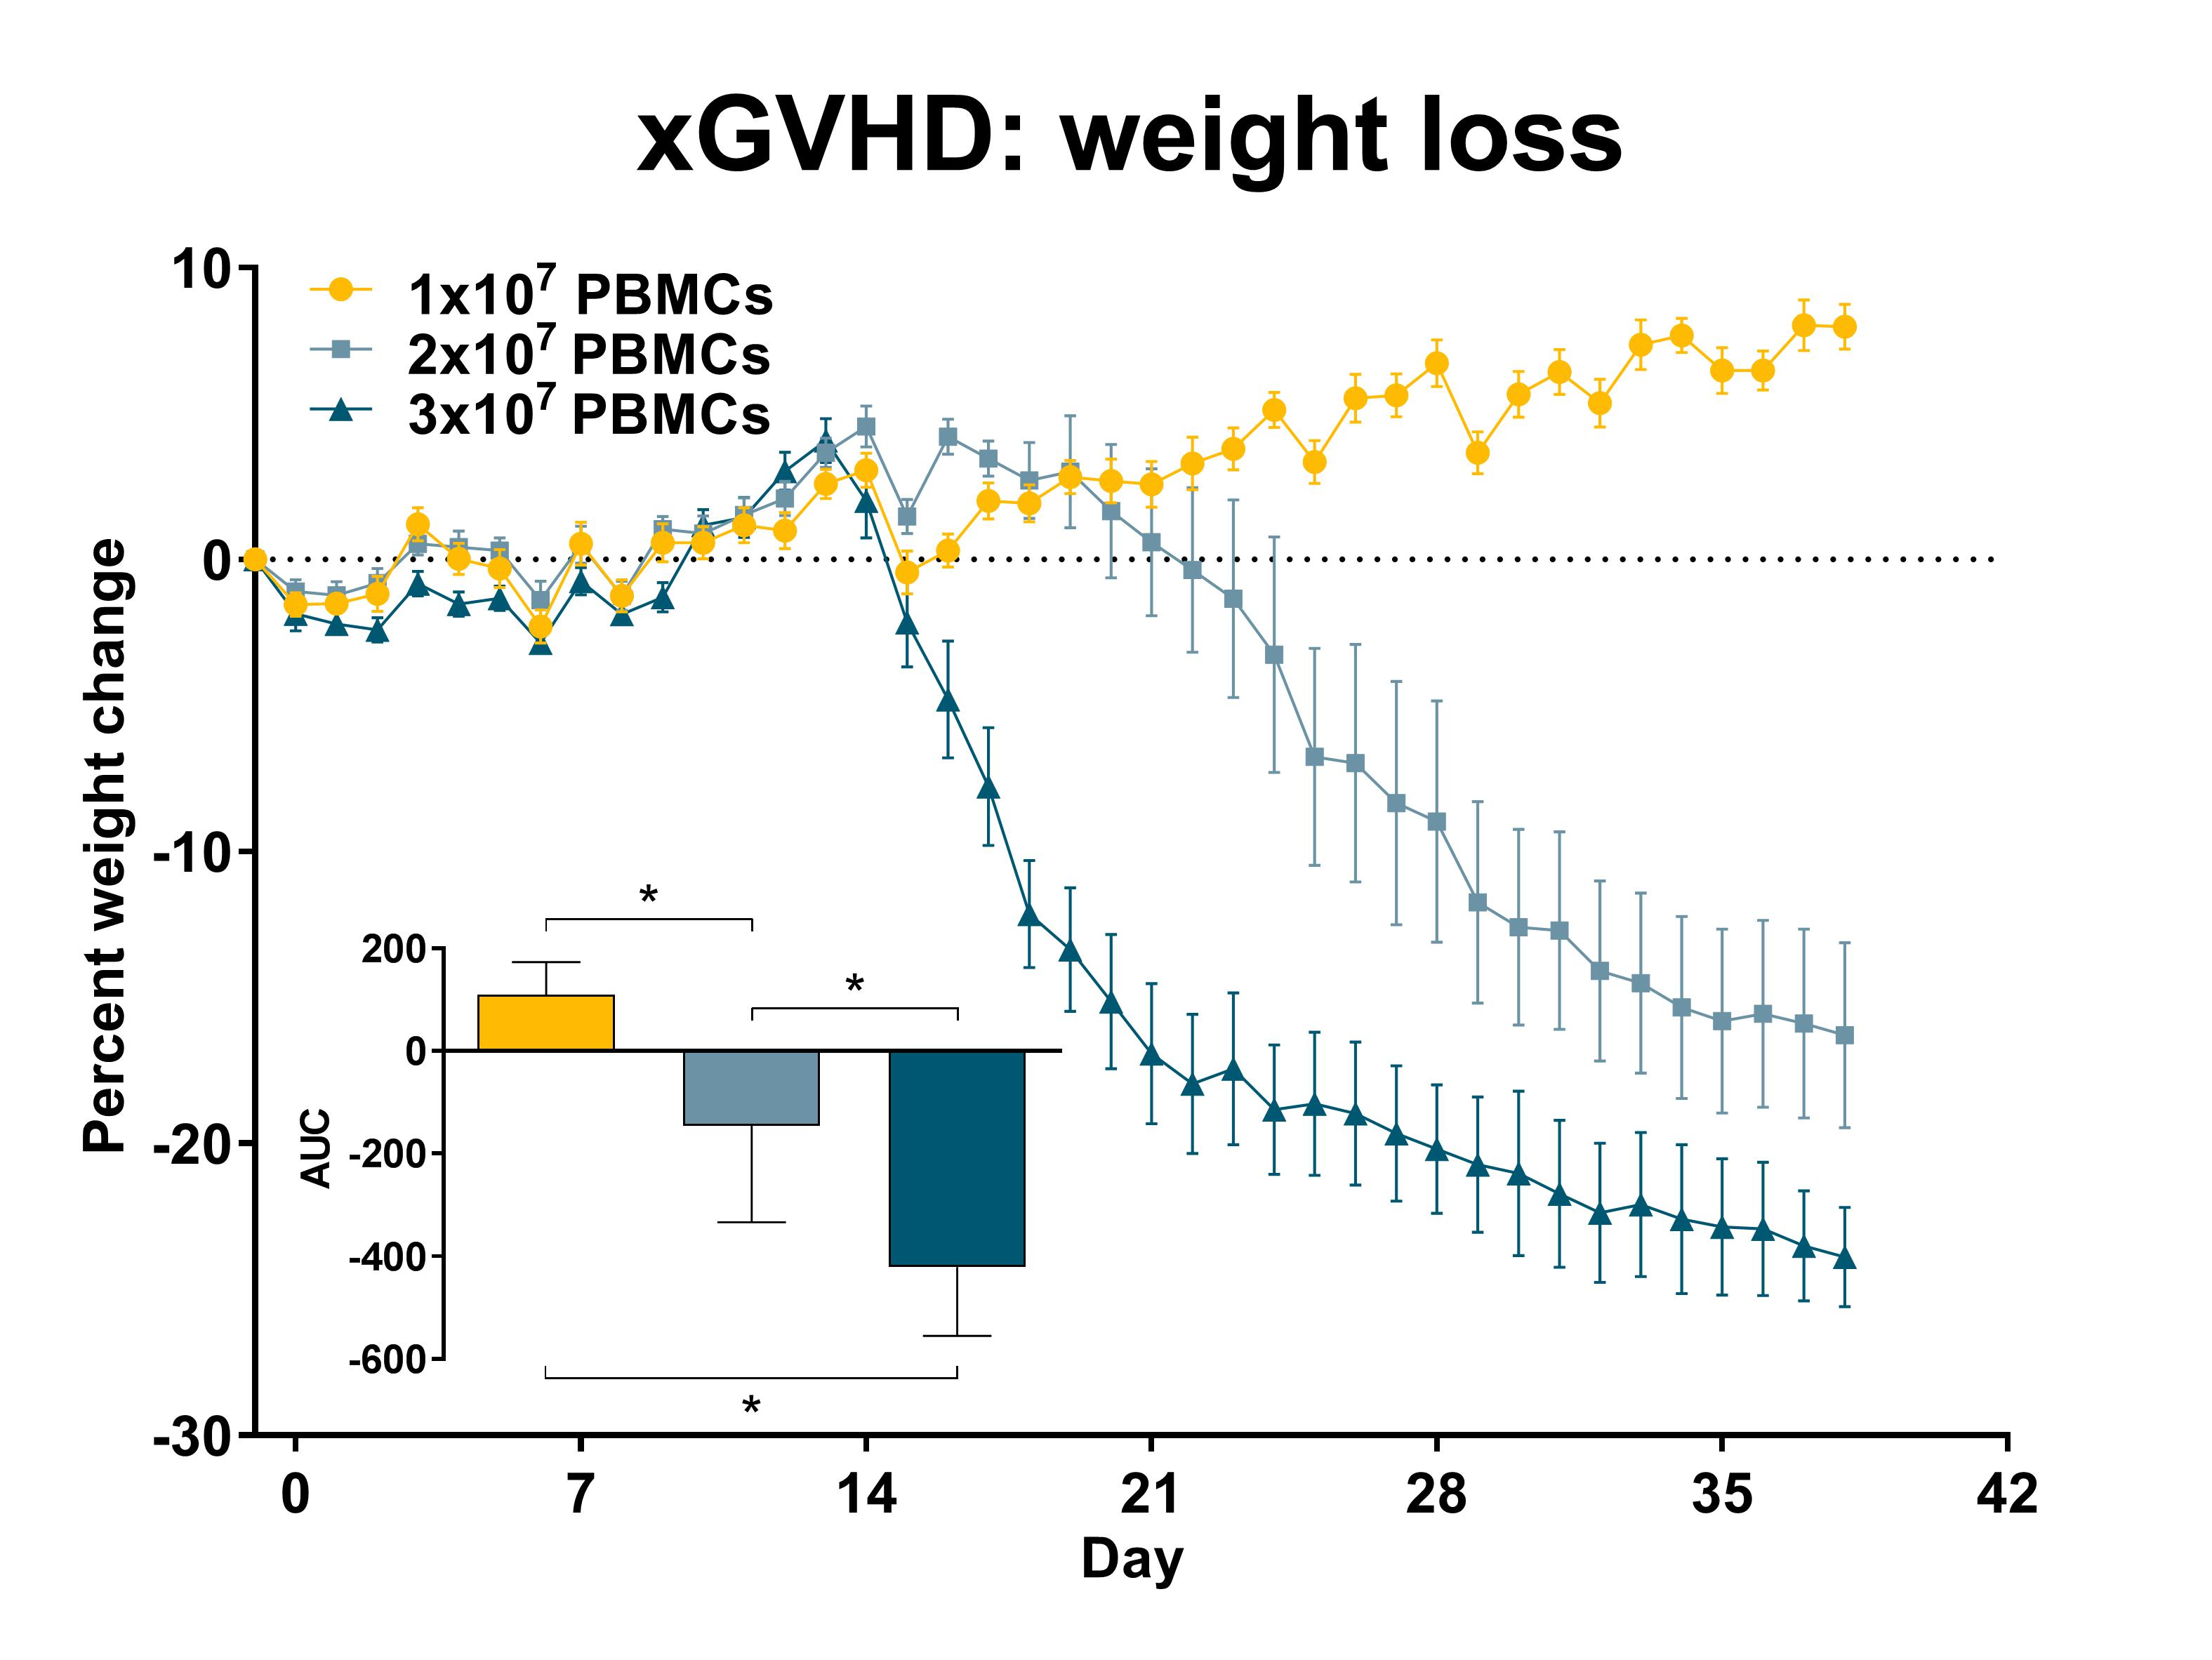 Recipient mice were injected with a pre-determined number of purified single-donor human PBMCs (see legend) on day 0. Weights were recorded daily and the percent weight change relative to day 0 was calculated. Statistical evaluation by one-way ANOVA with Holm-Šidák's multiple comparison post-test. *: p<0.005 comparing indicated groups. AUC: area under the curve; n=15 per group; data is presented as mean ±SEM.